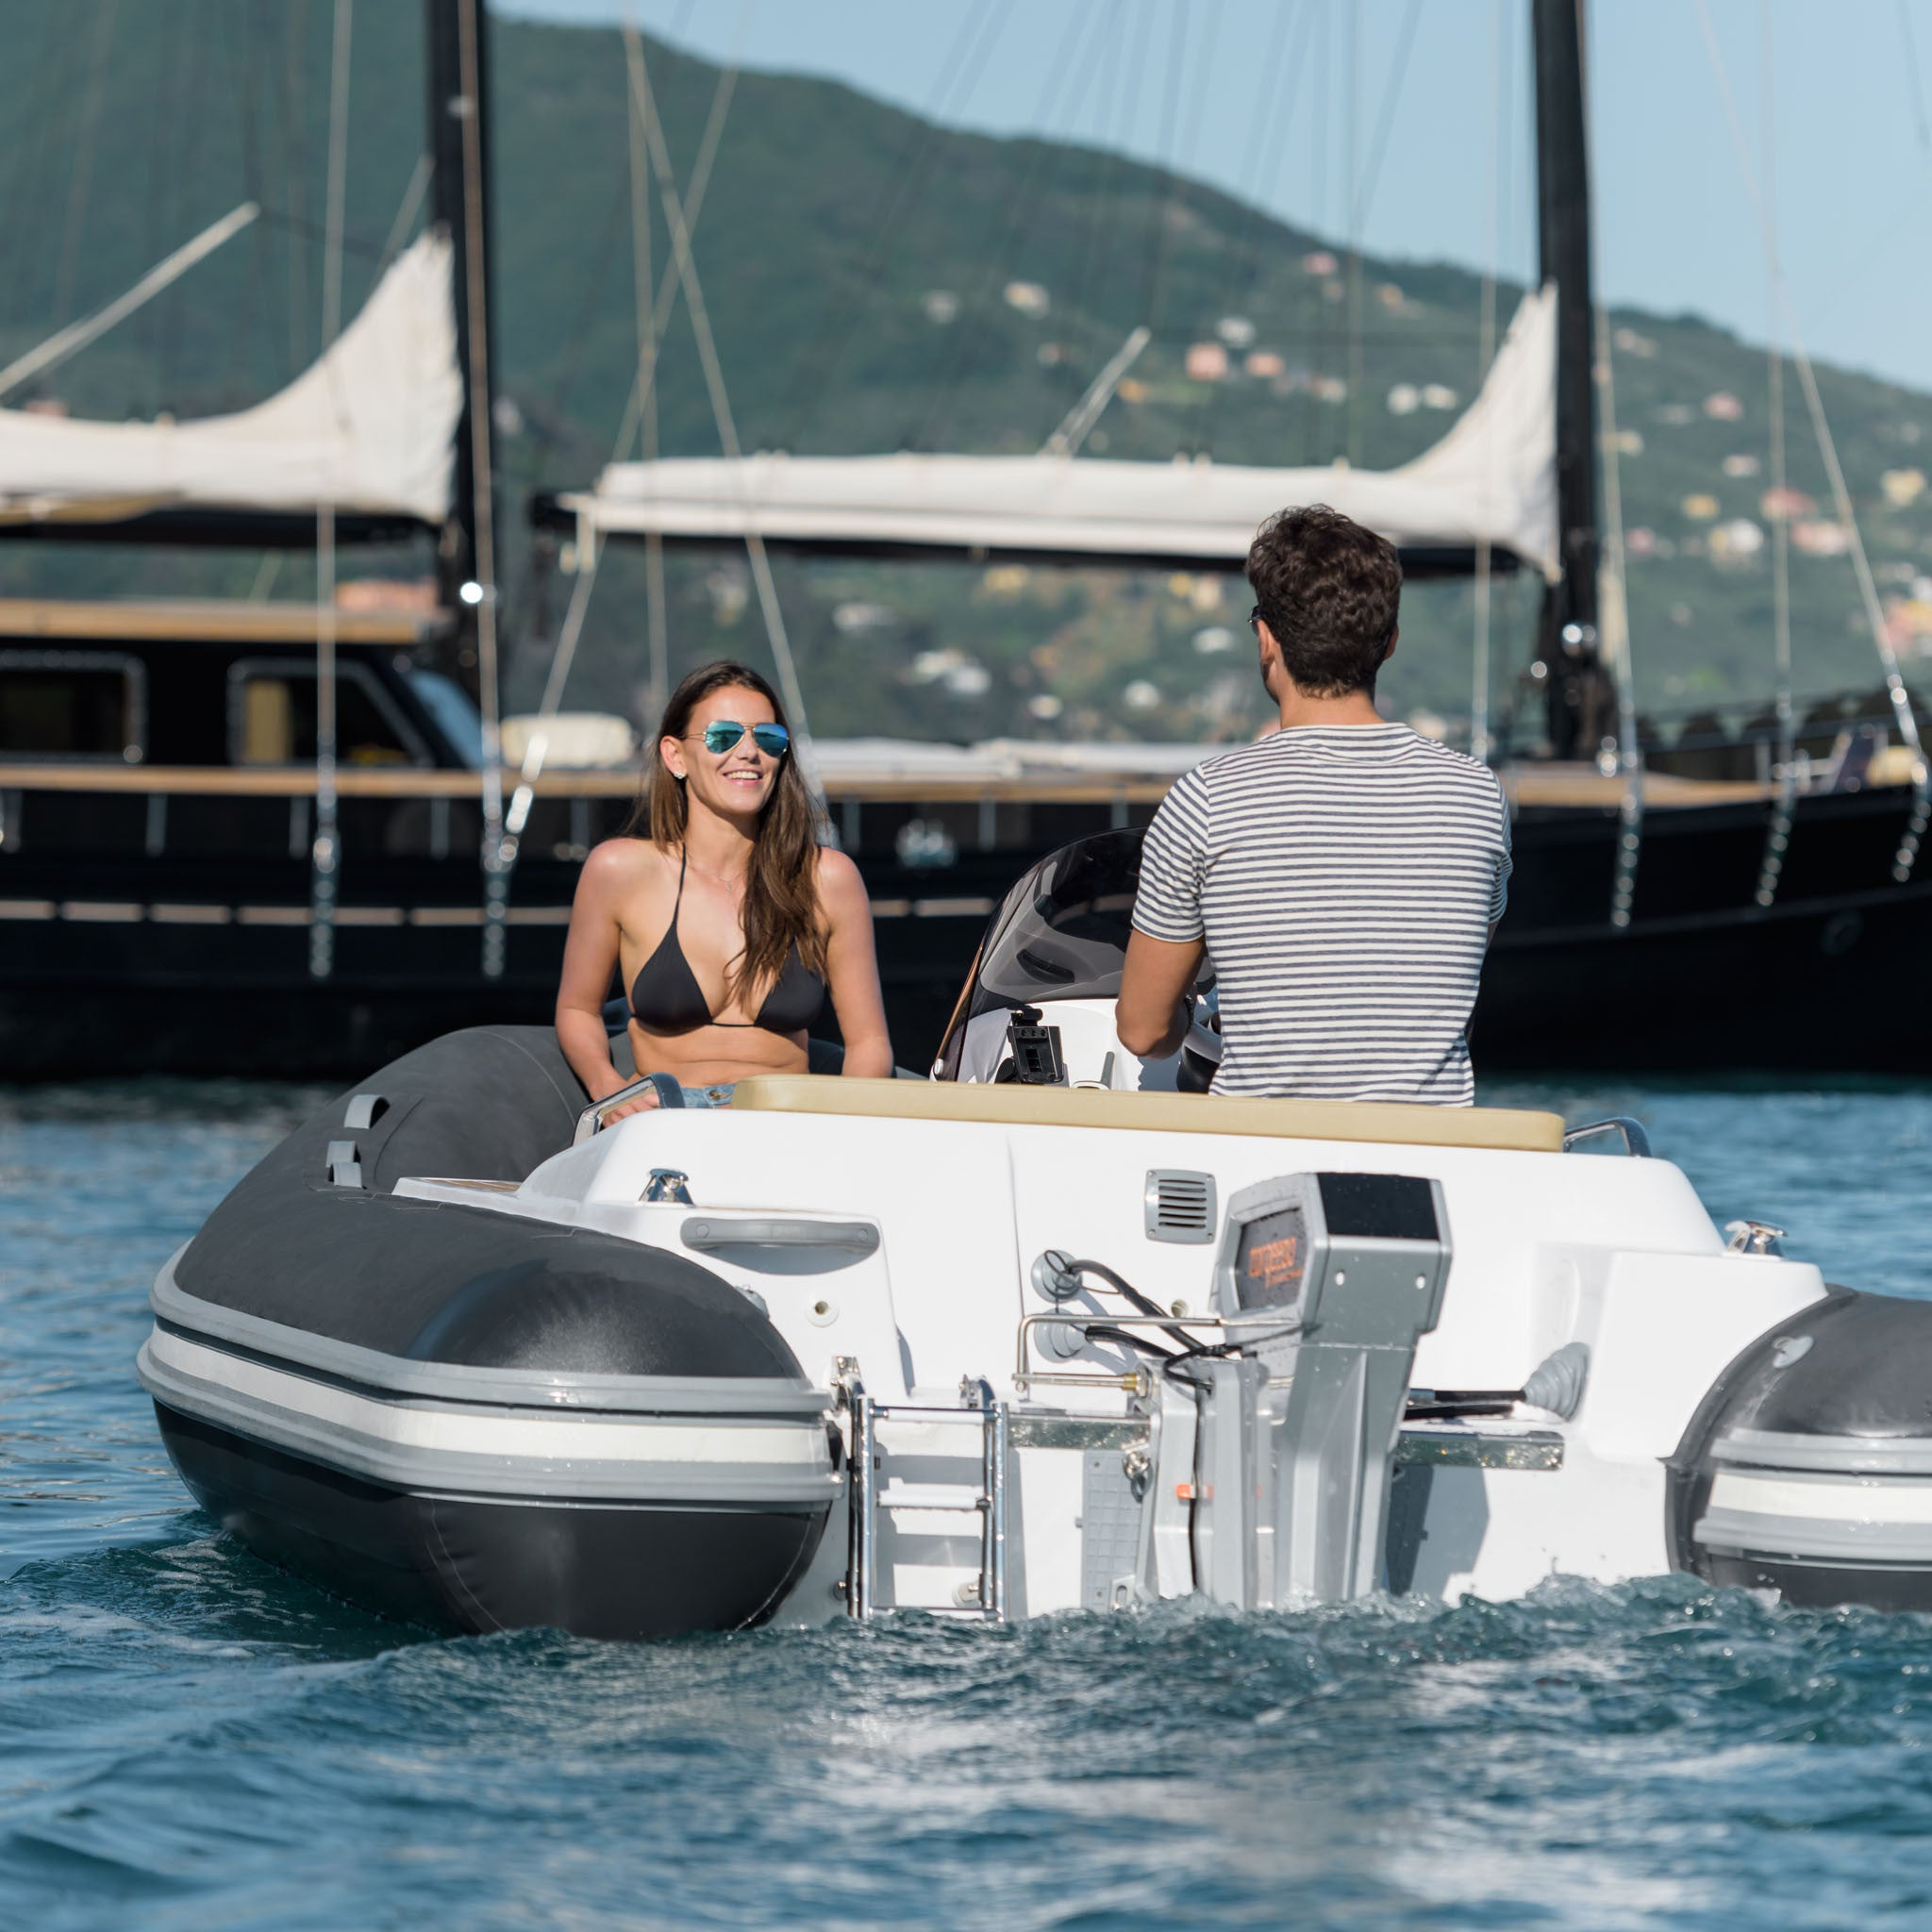 Torqeedo Cruise 10.0 Remote Electric Outboard Motor sold online at Wee Boats